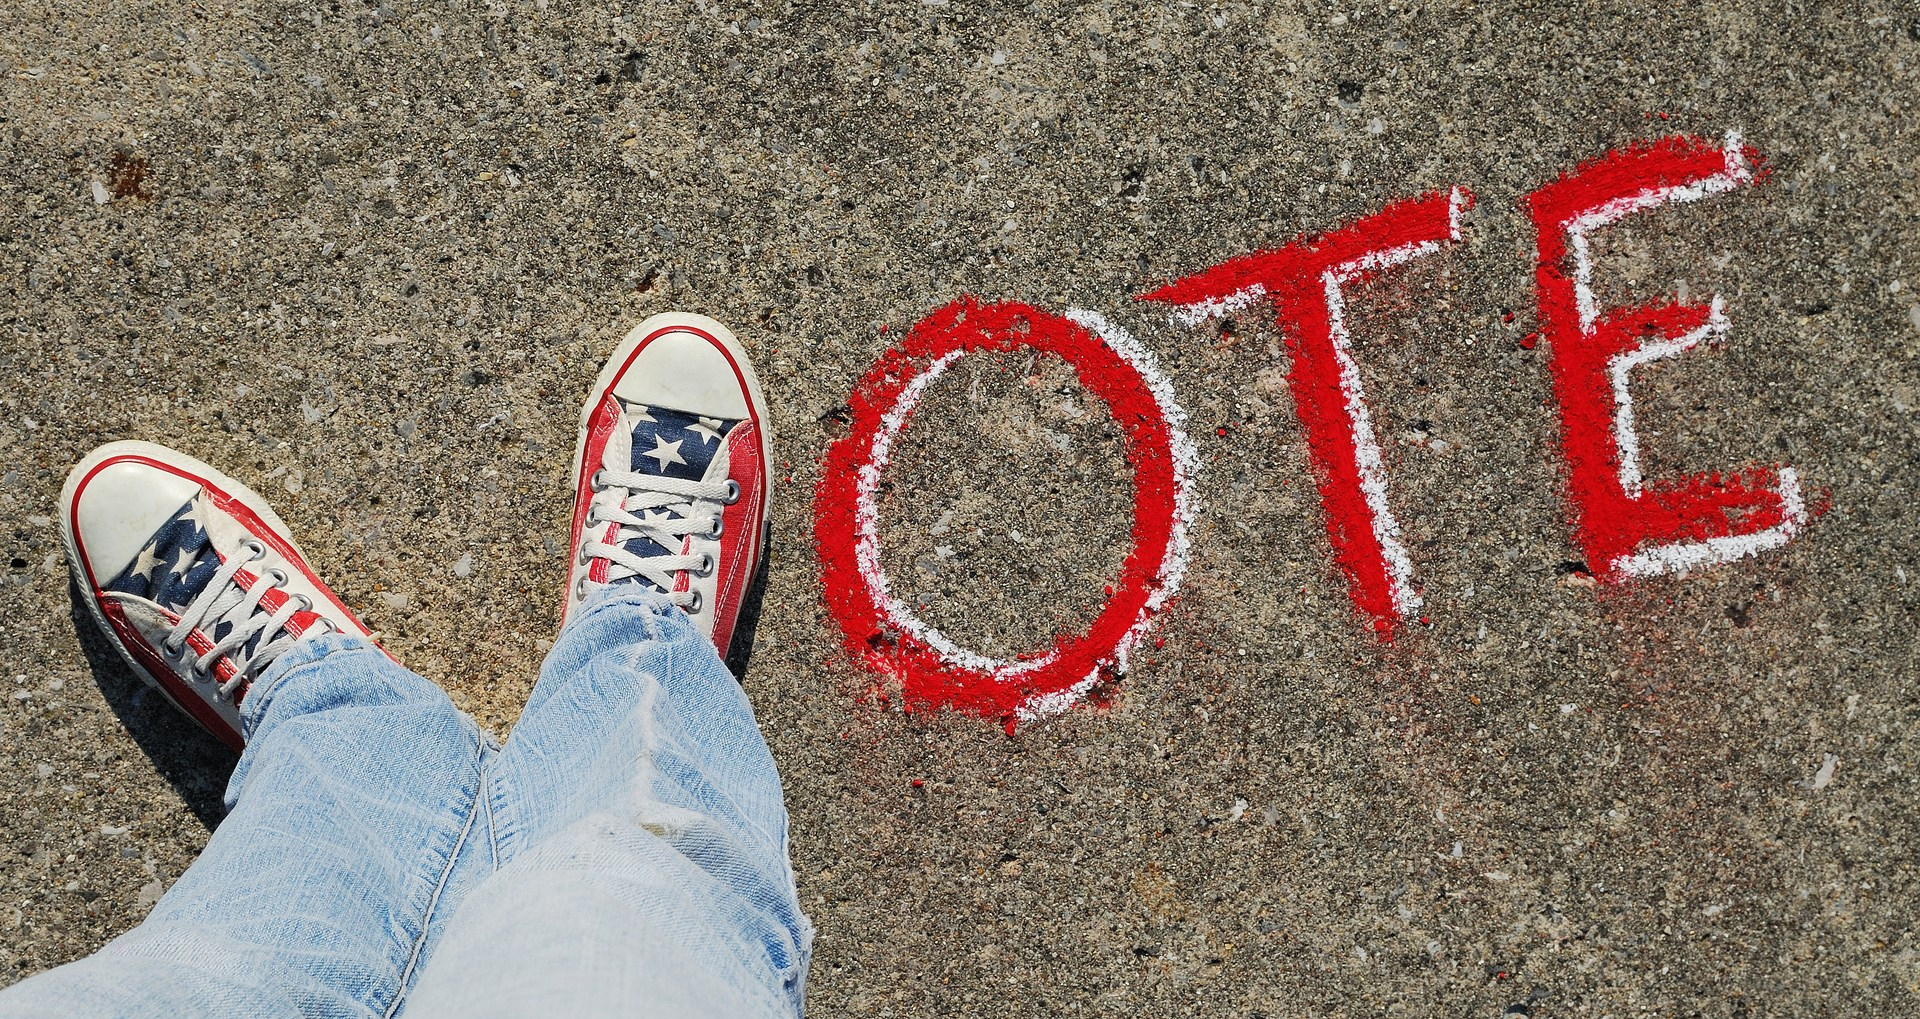 Keep America Great: 10 Reasons You Must Vote, Despite What The Polls Are Showing